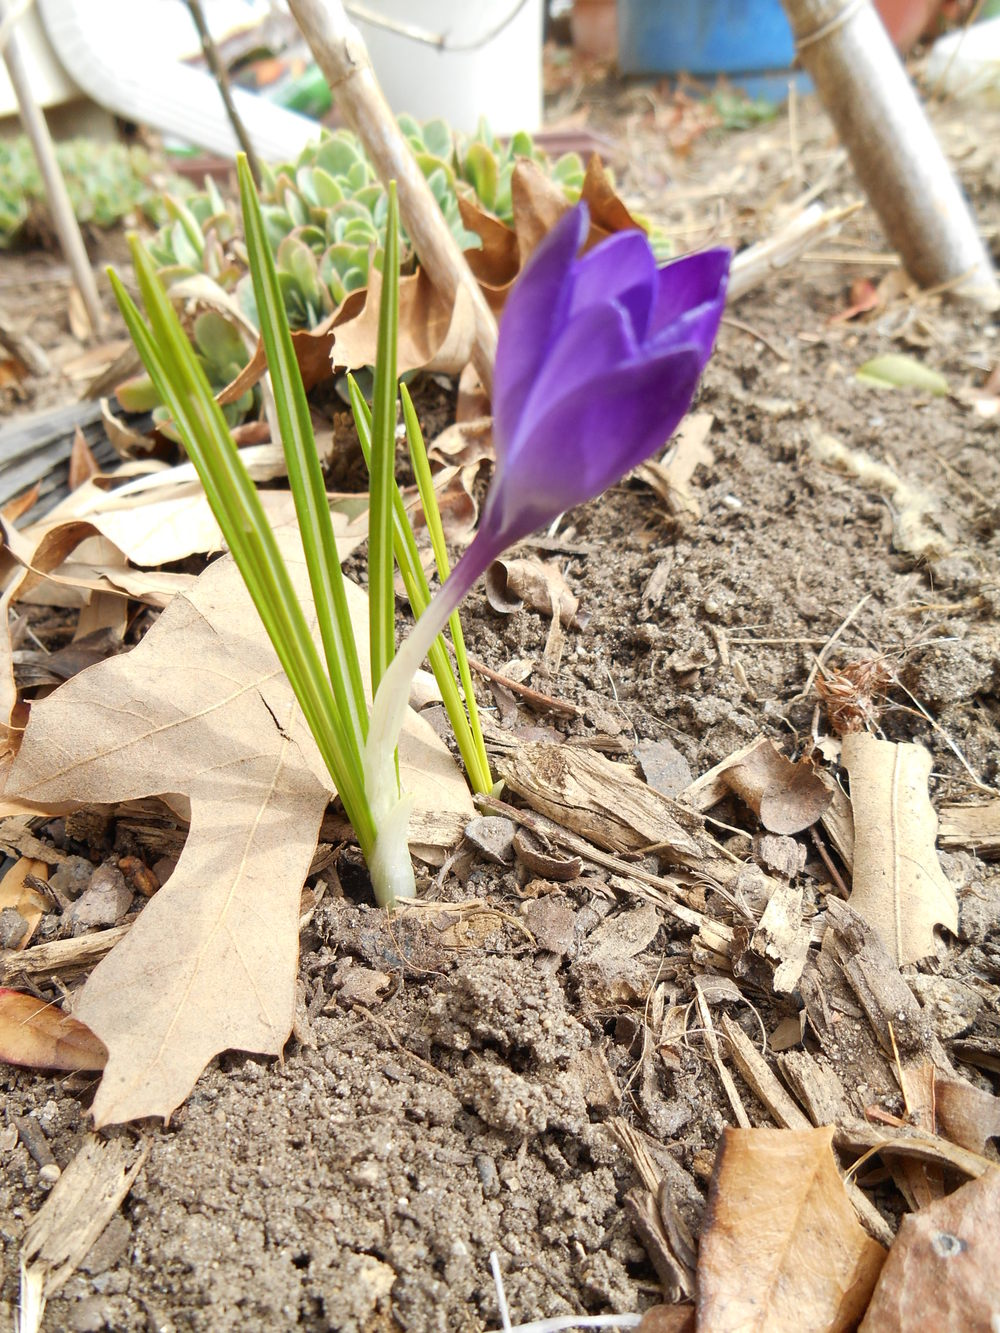 How did these crocus bulbs escape the squirrels?